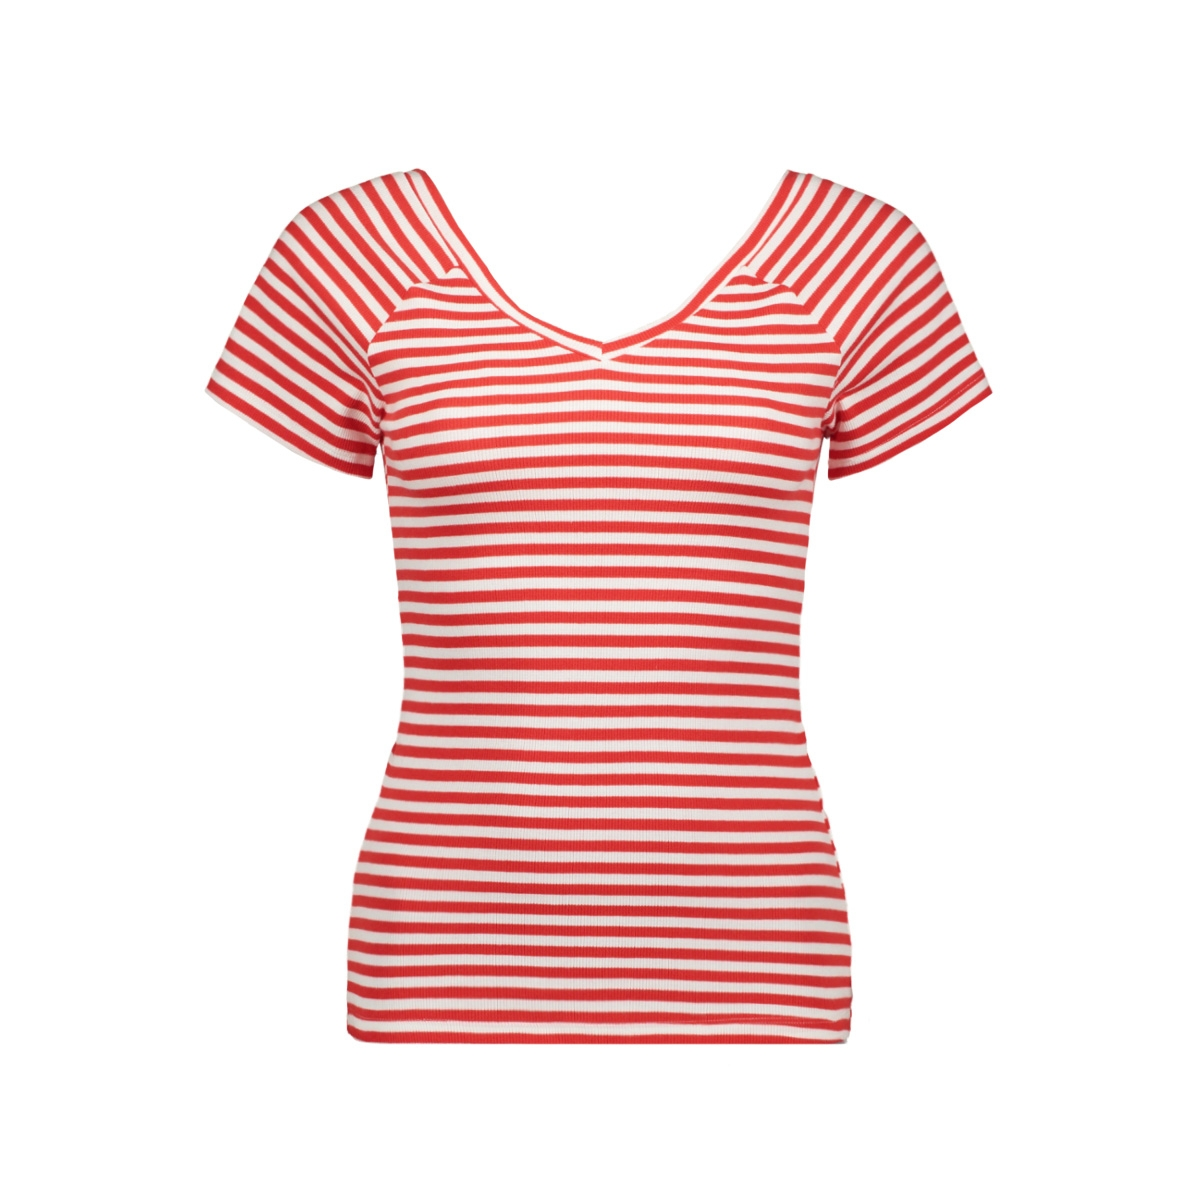 onylabella s s v neck top jrs 15178098 only t-shirt bright white/flame scarlet